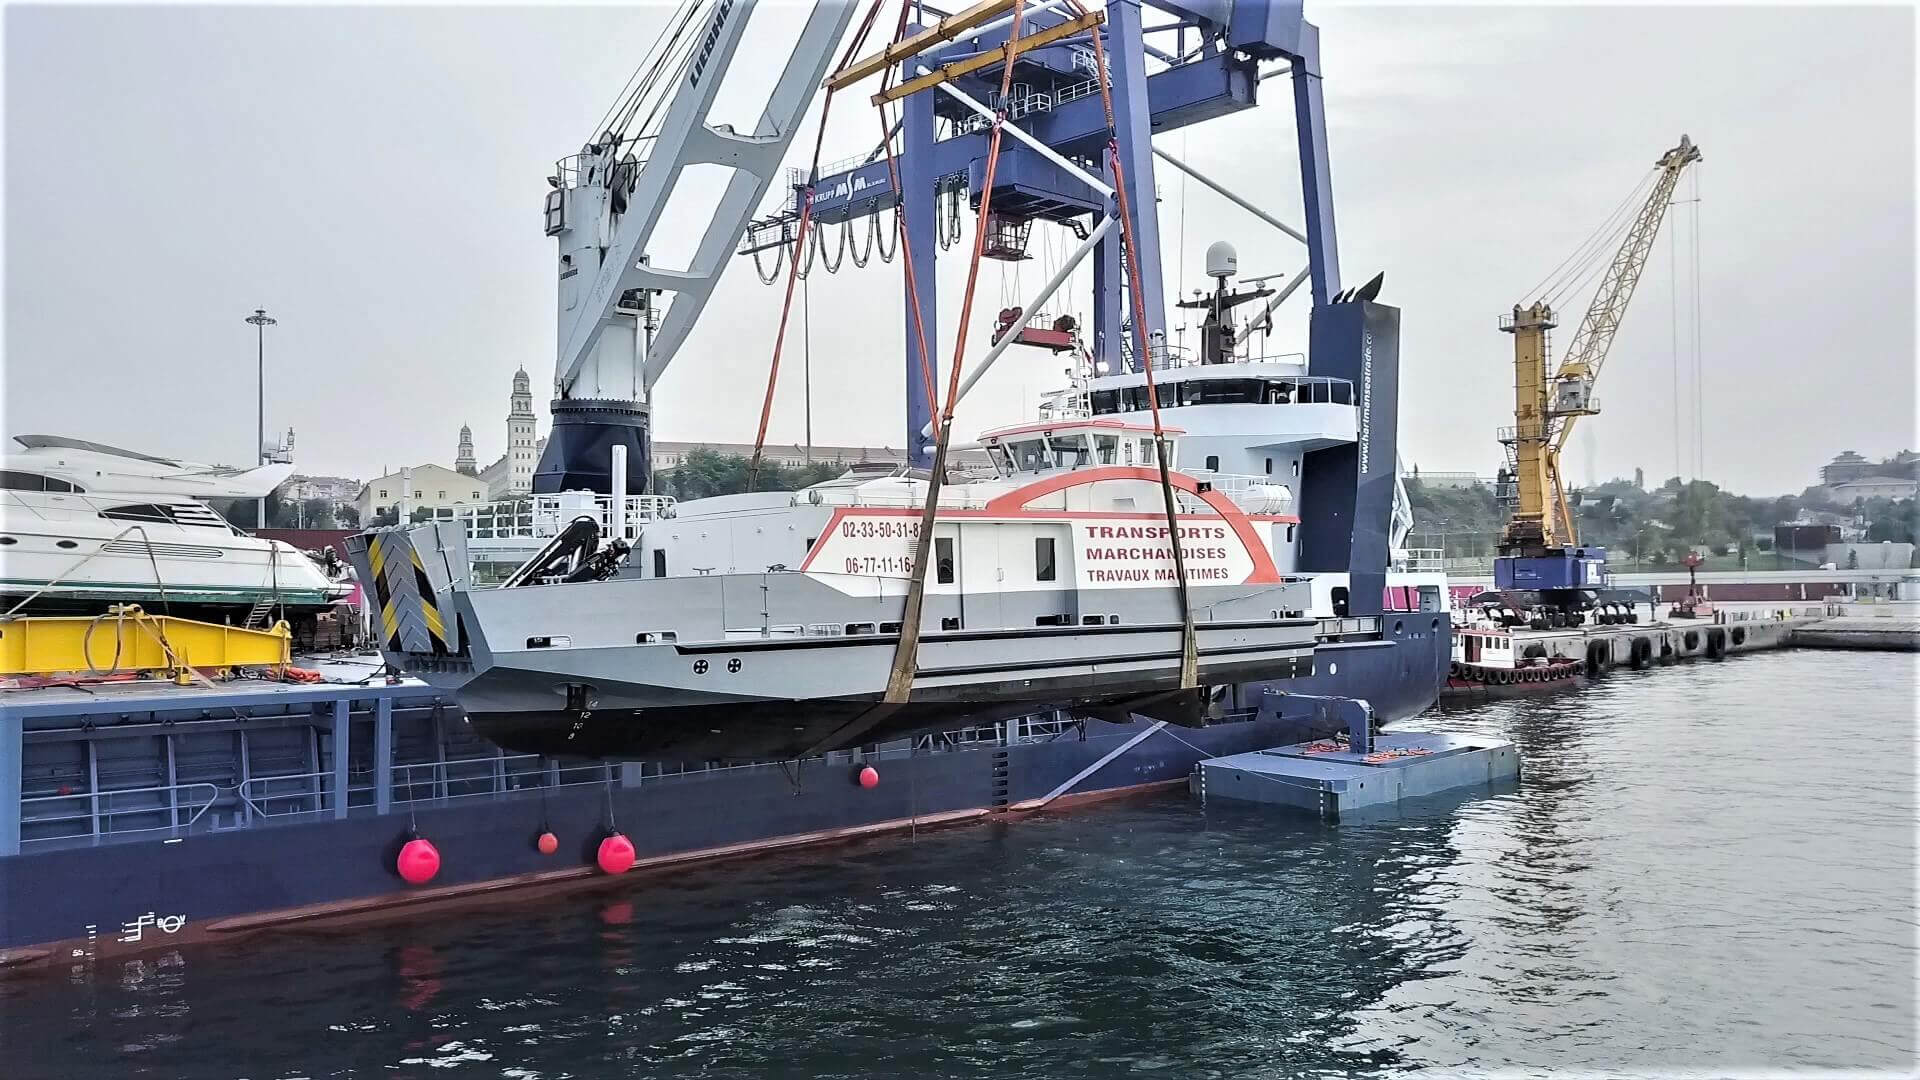 turquoise-yacht-transport-is-the-official-shipping-agency-of-workboat-turkey-ltd   Blog